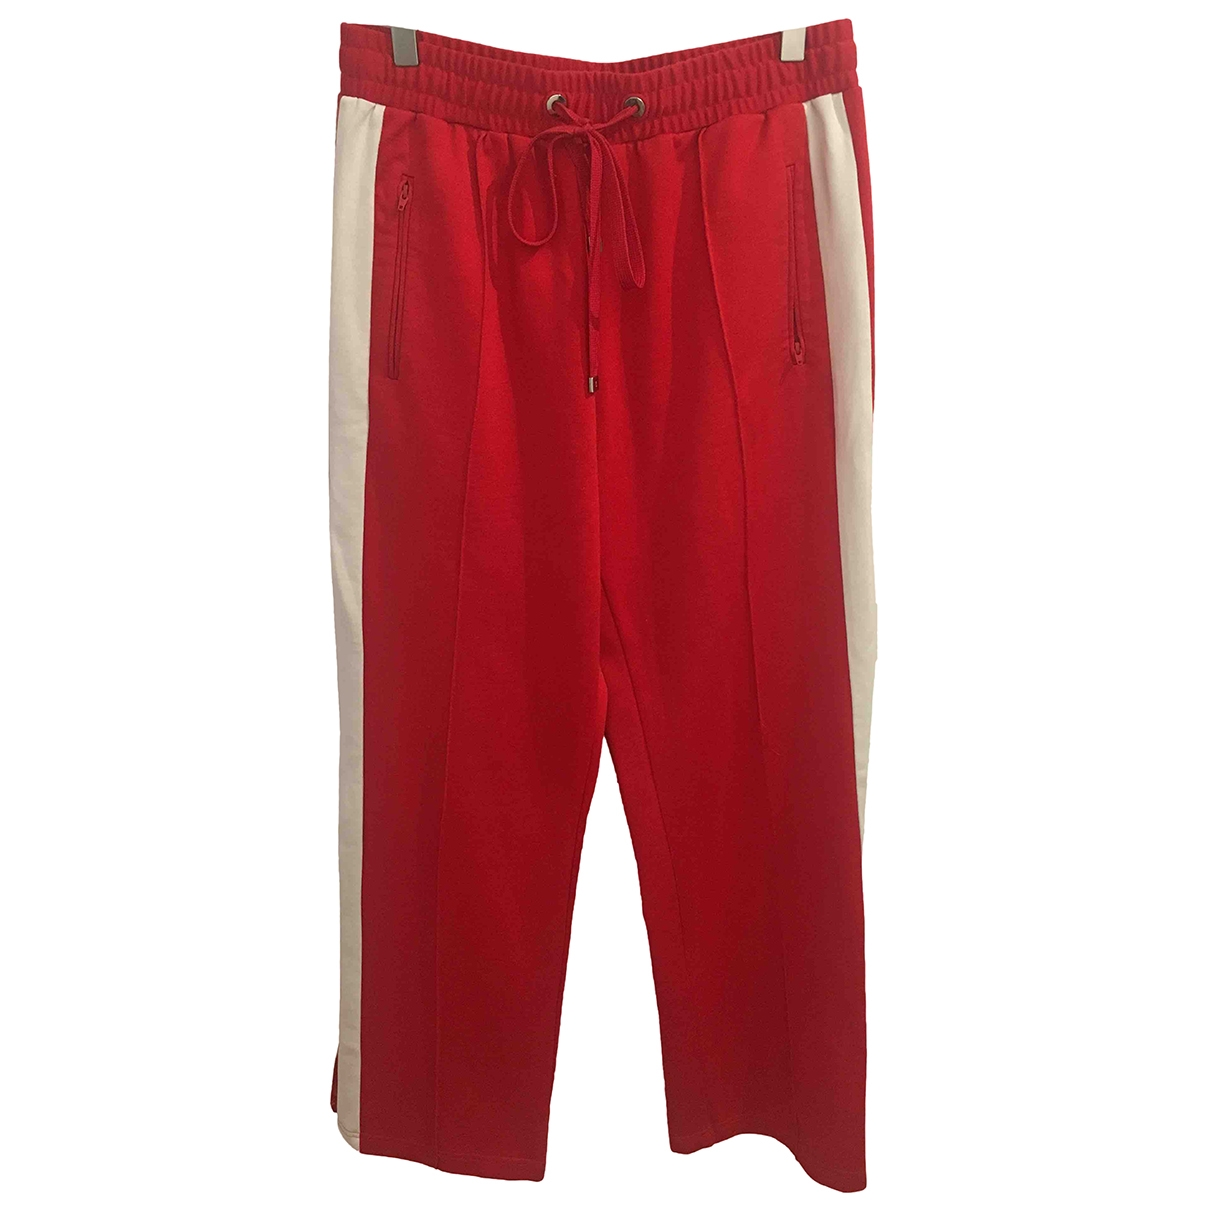 Mo&co \N Red Trousers for Women L International